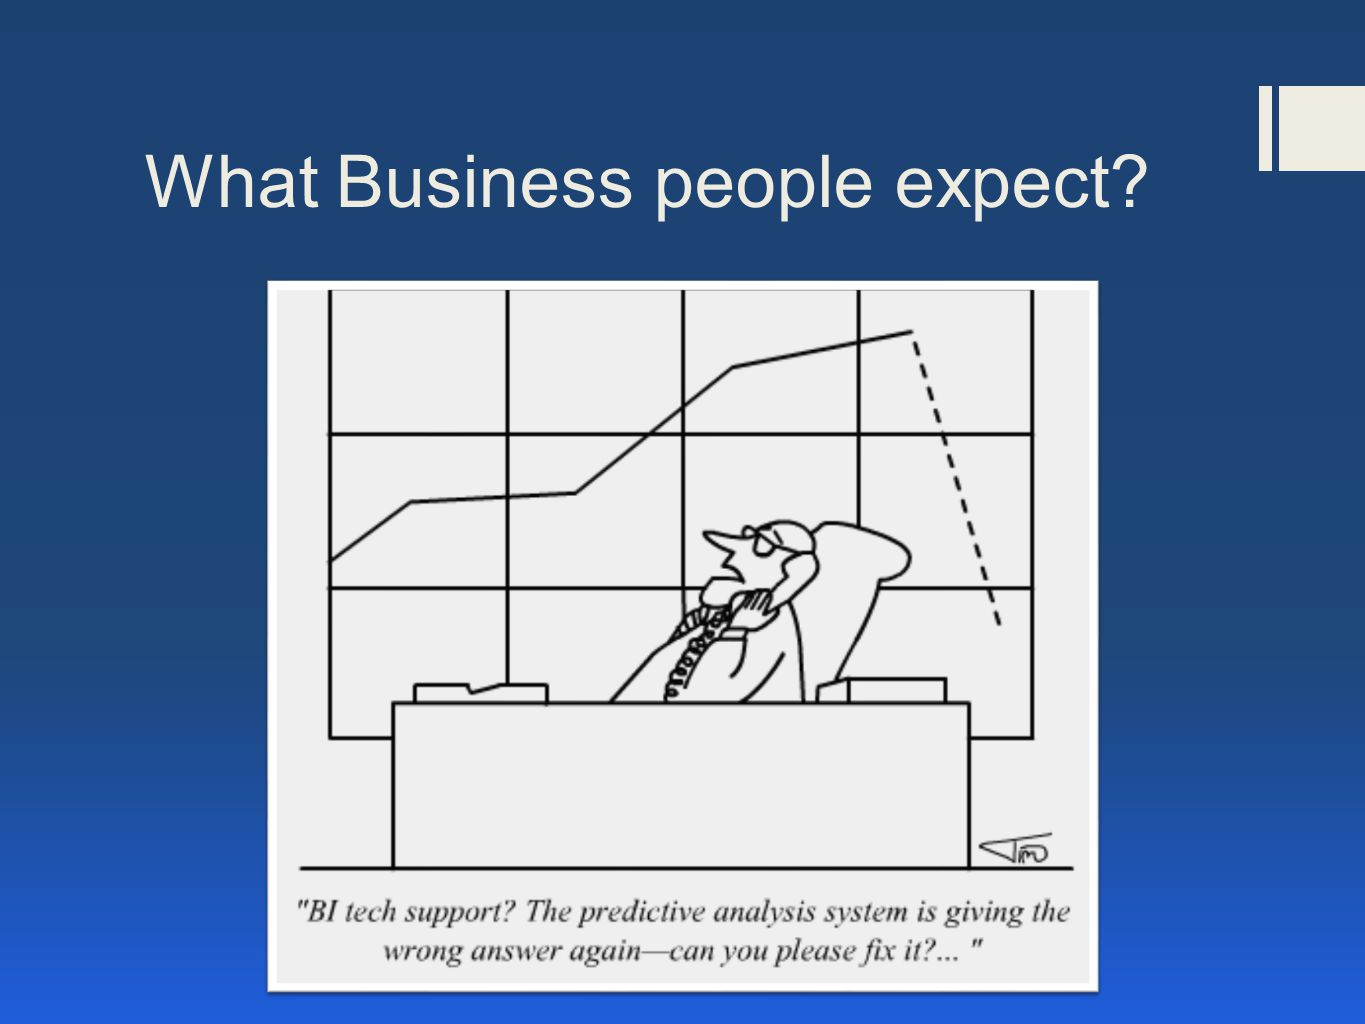 What Business people expect